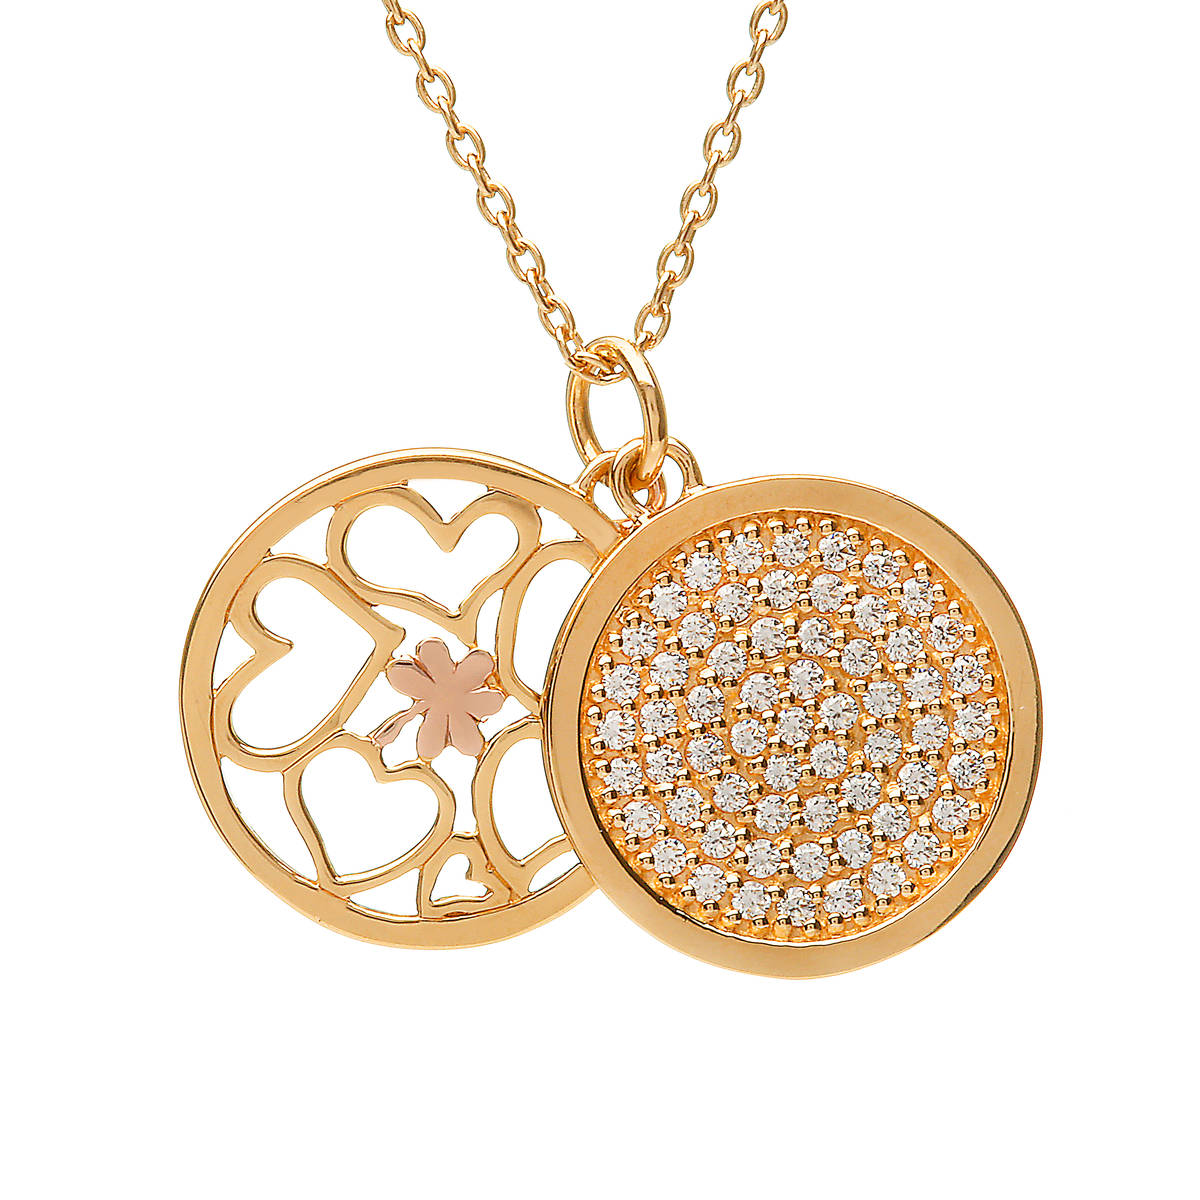 House of Lor silver GP double round cz pendant with rose gold Shamrock made from rare Irish gold